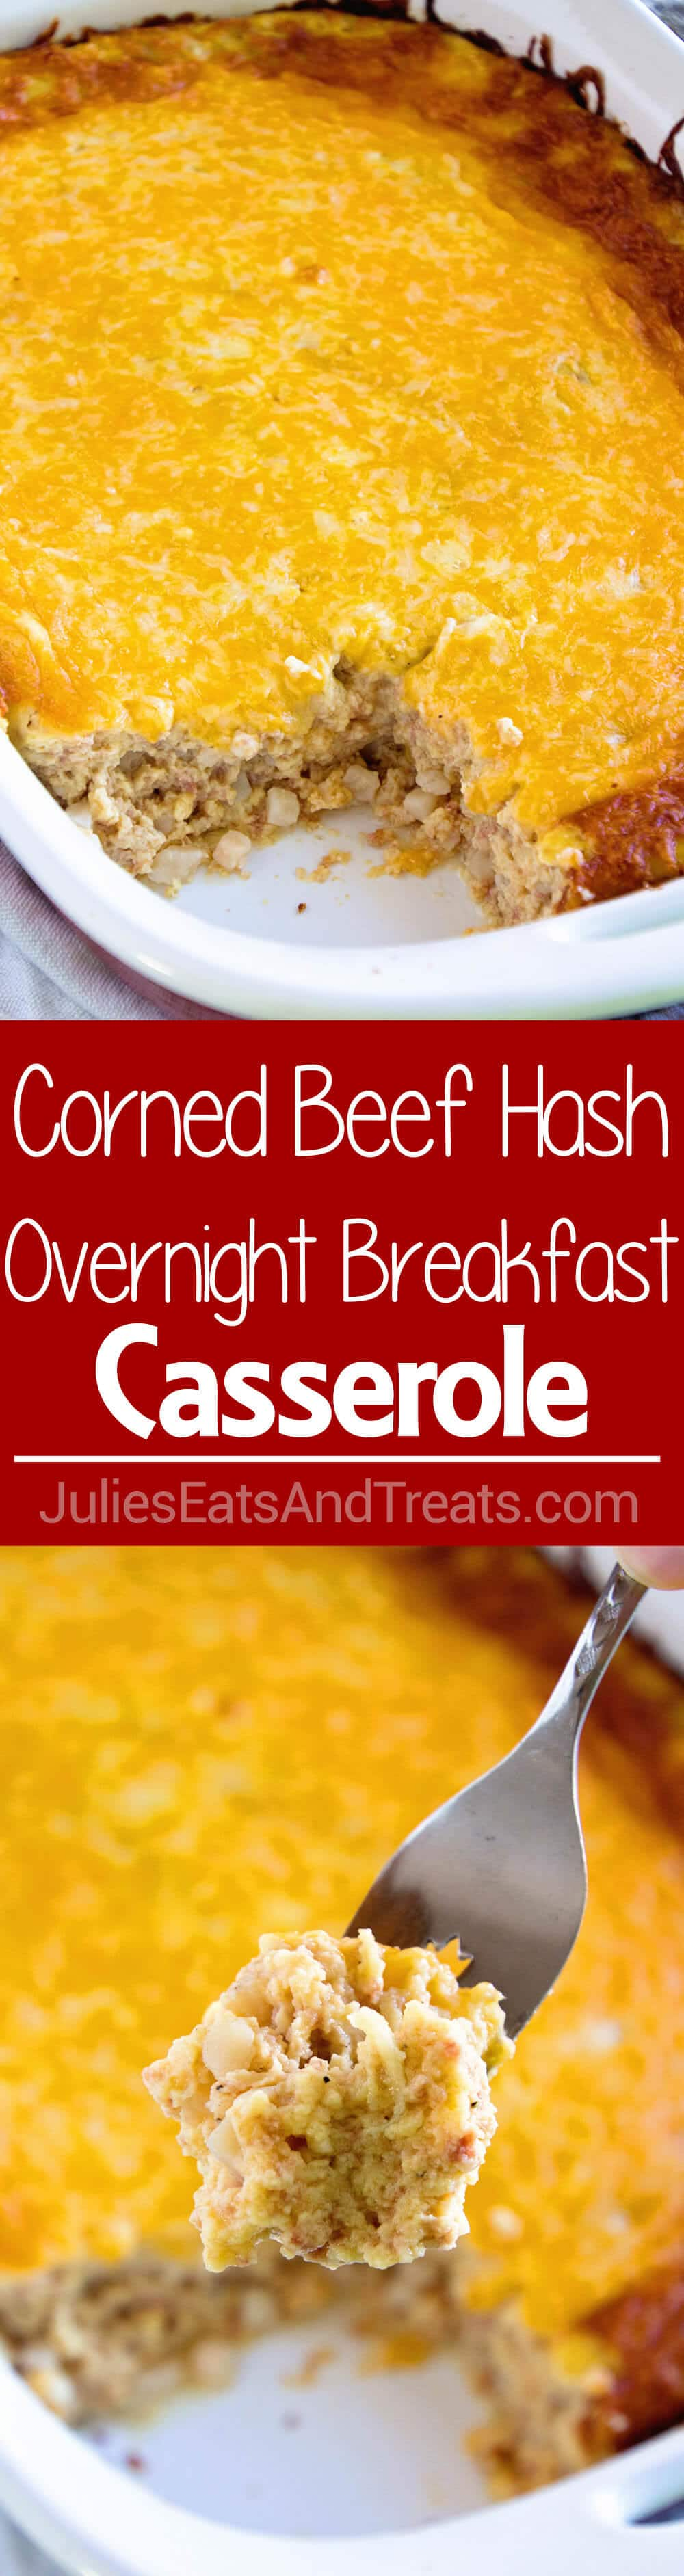 Corned Beef Hash Overnight Breakfast Casserole ~ Delicious, Comforting Overnight Breakfast Casserole Loaded with Corned Beef Hash, Eggs and Cheese! The Perfect Breakfast for Lazy Mornings!